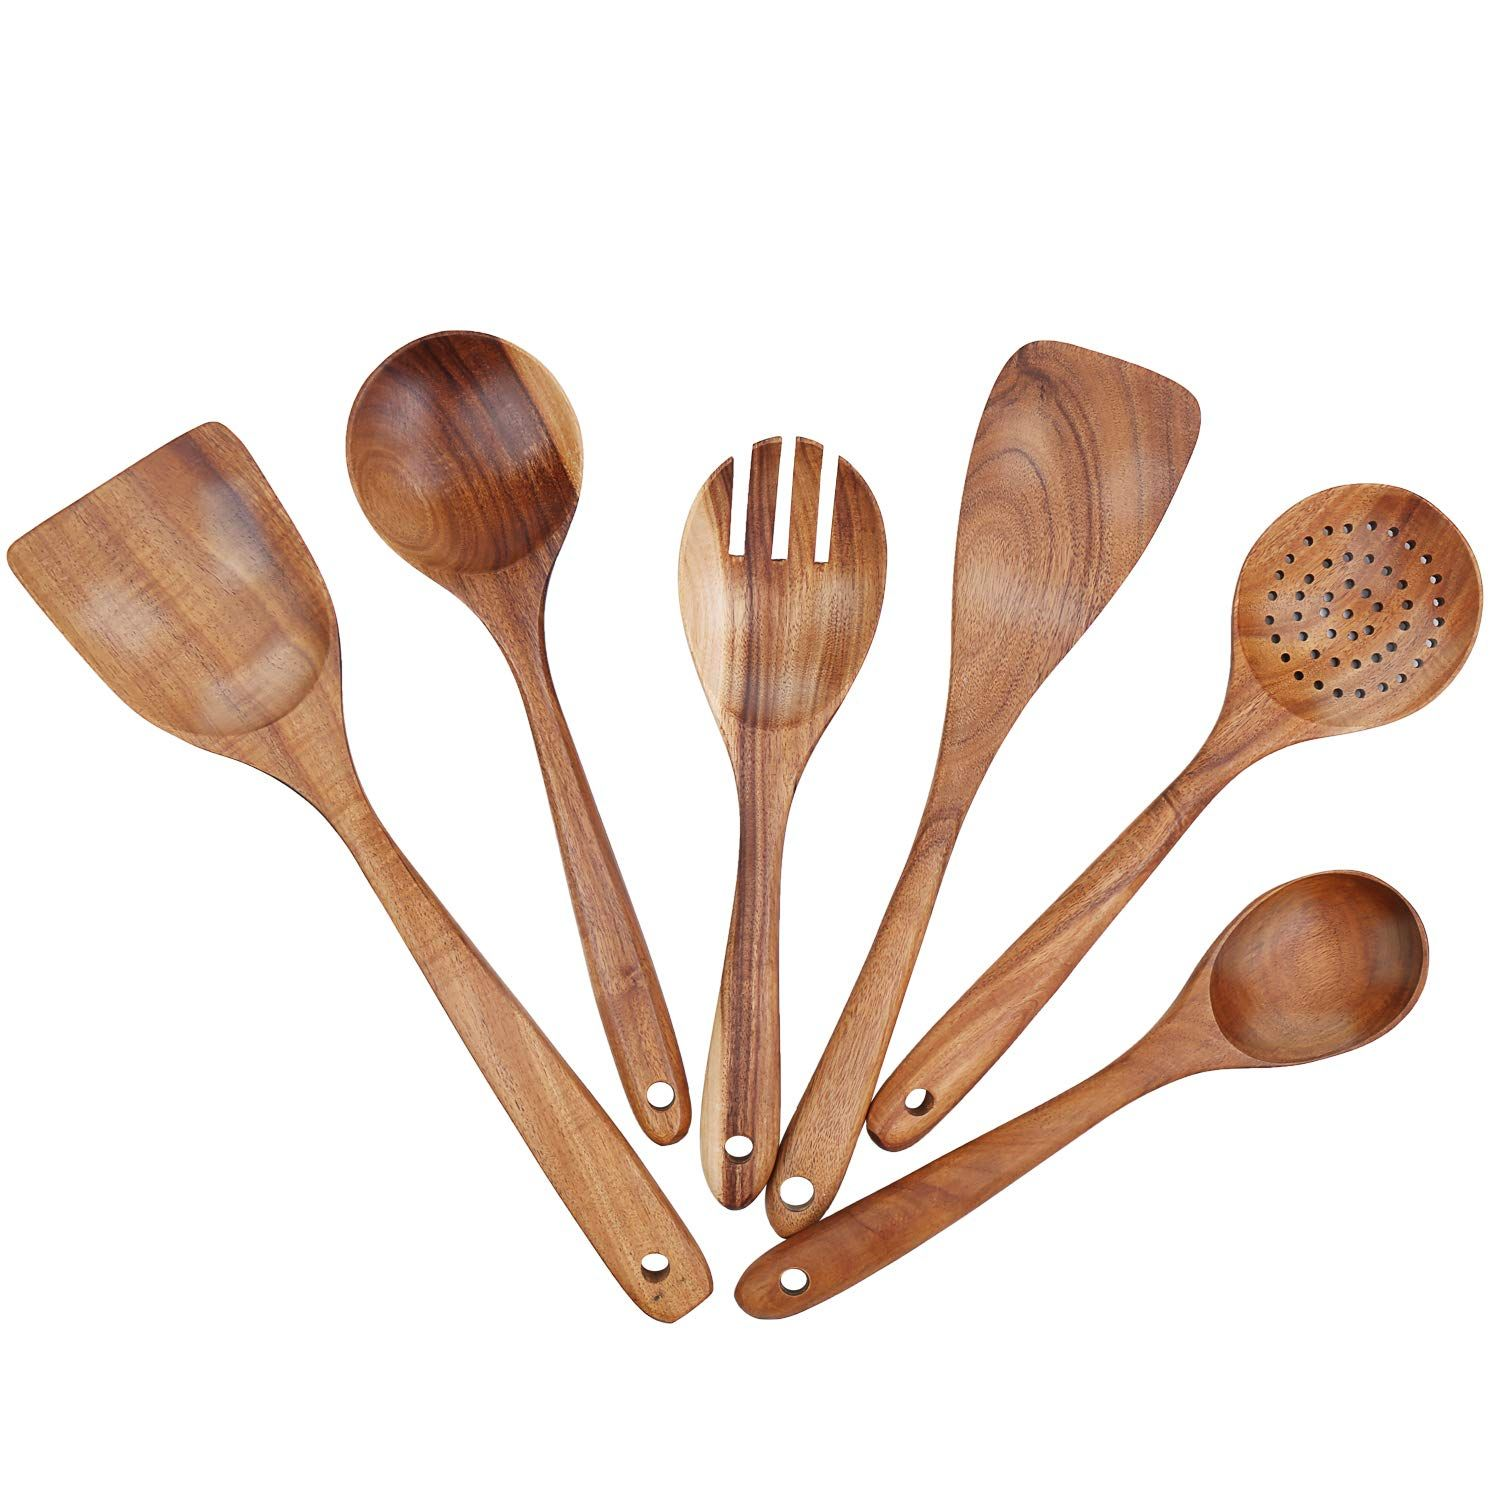 LOHOME Set of 4 Natural Wooden Spoons Dinner Tools Spatula Slotted Spoon /& 2 Soup Spoons Kitchen Utensil Set